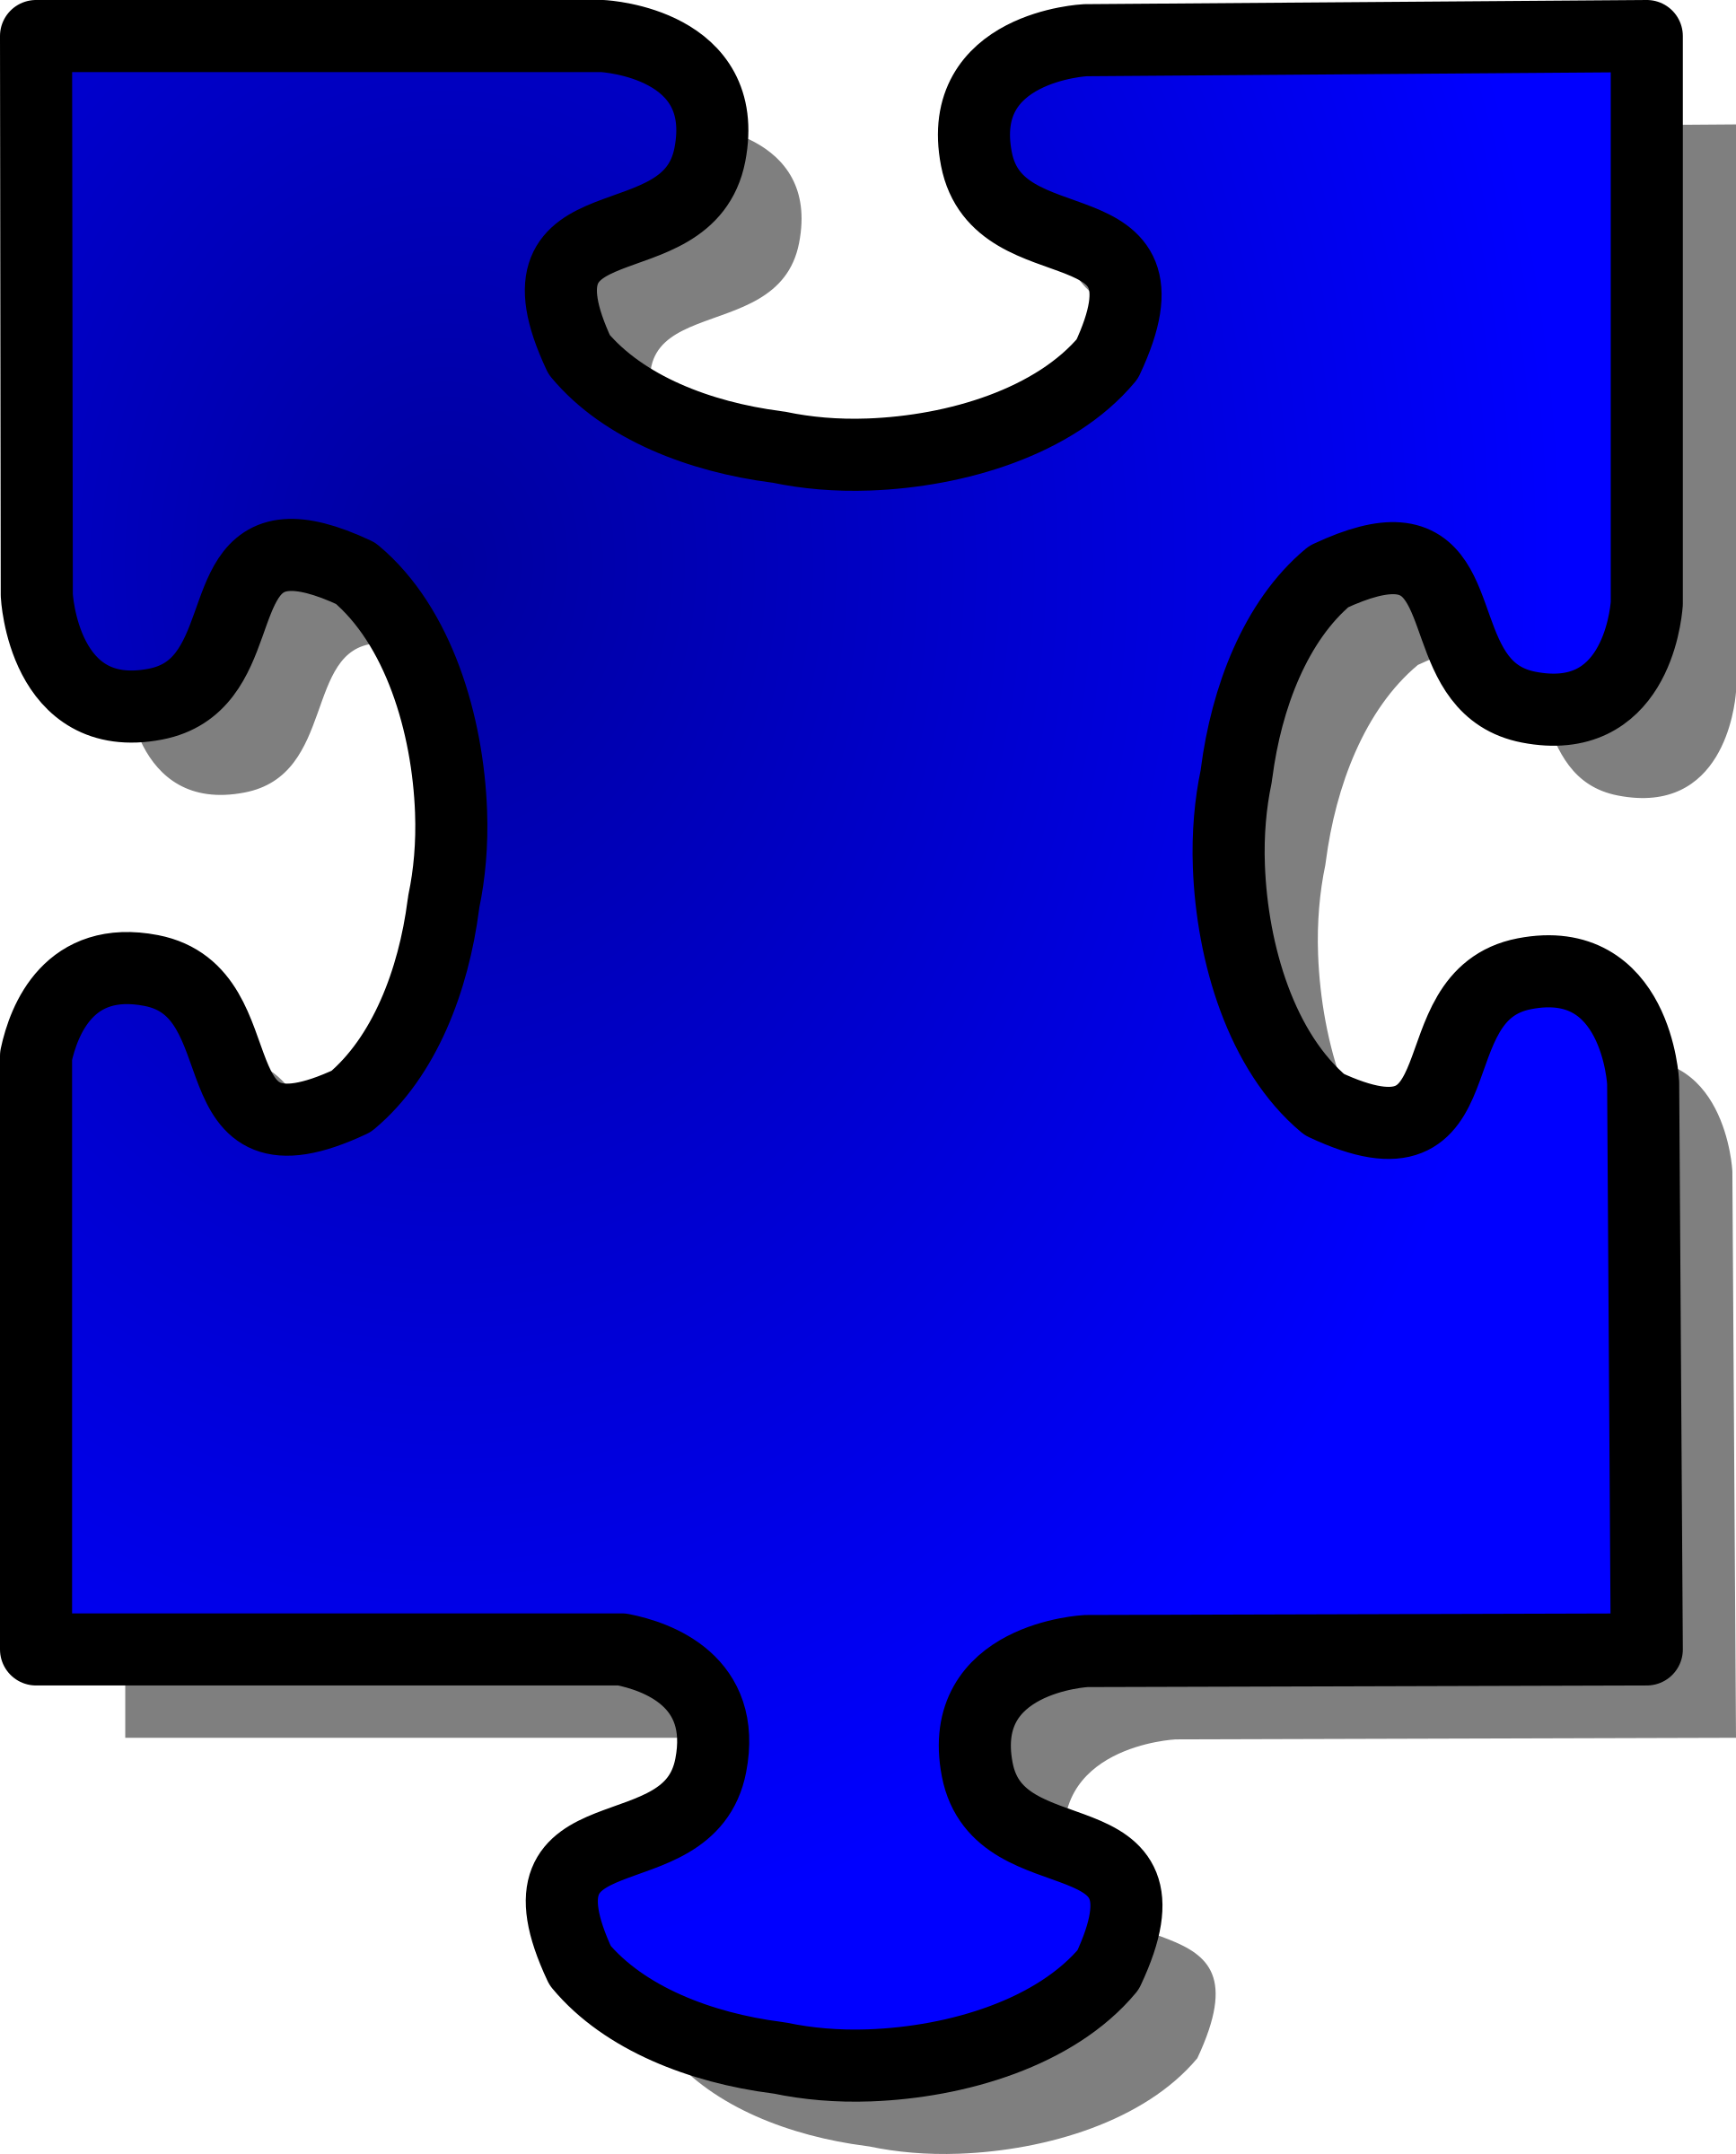 Blue Jigsaw piece 15 by nicubunu